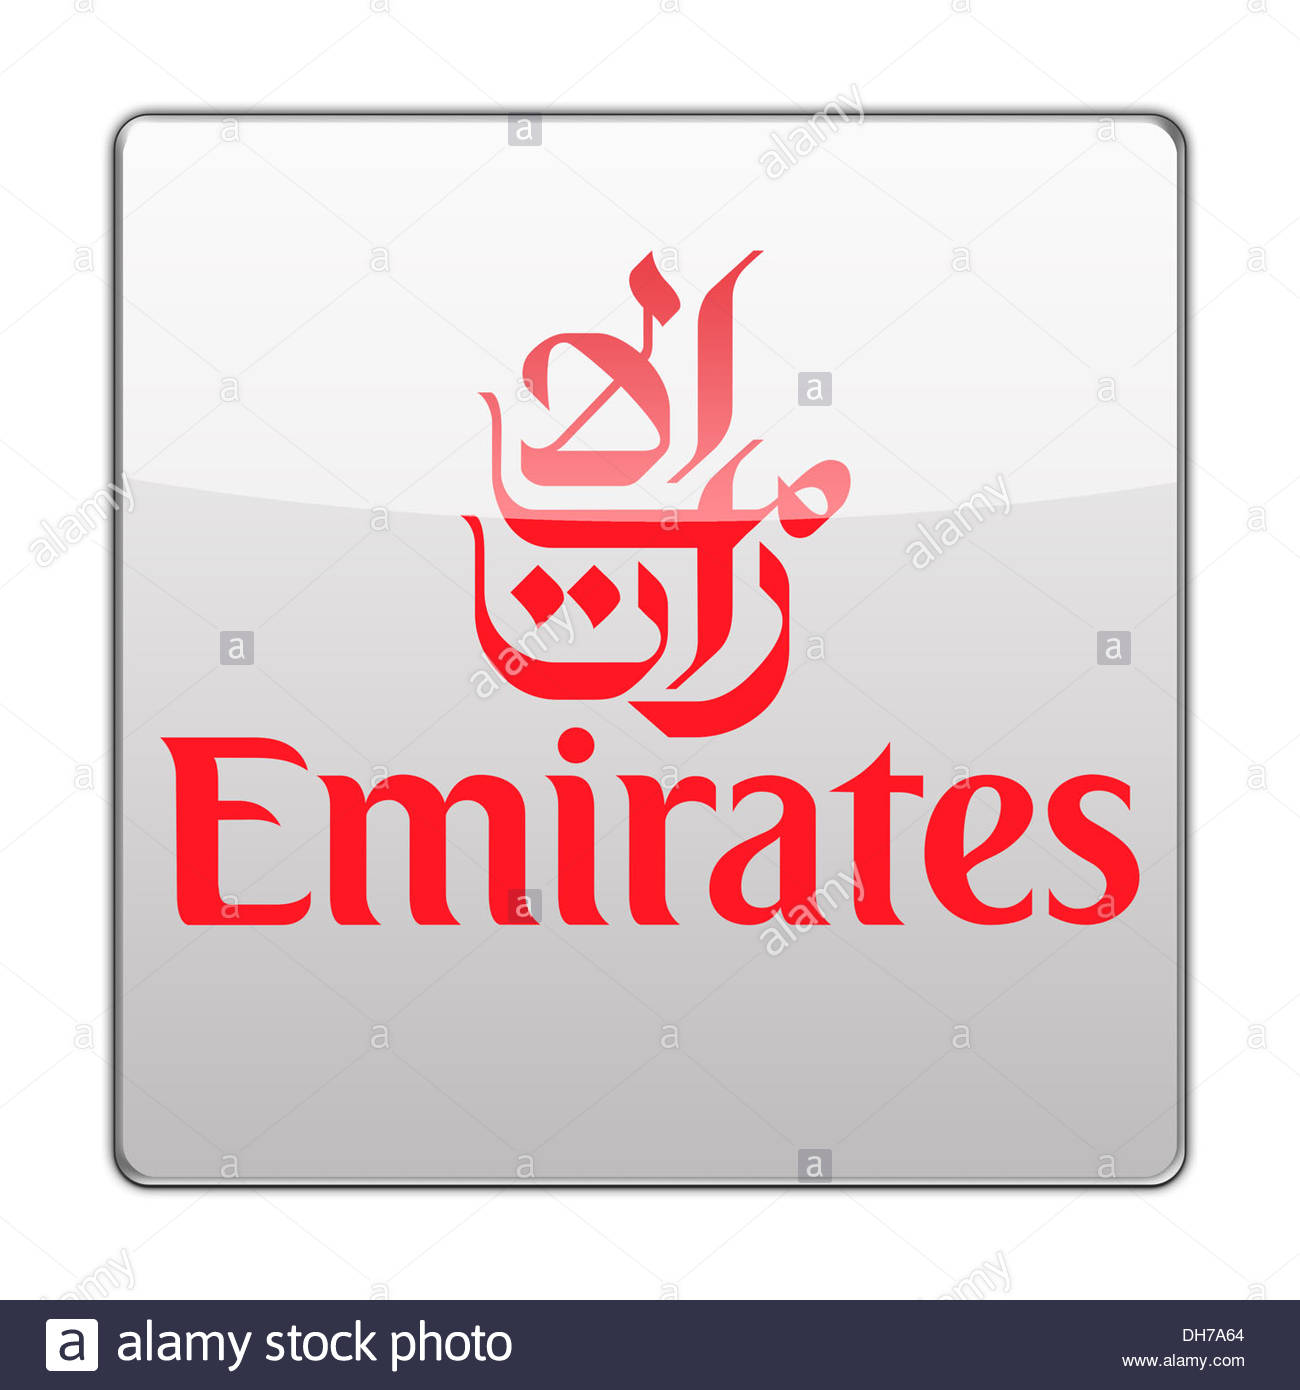 emirates airline icon logo flag sign app stock photo